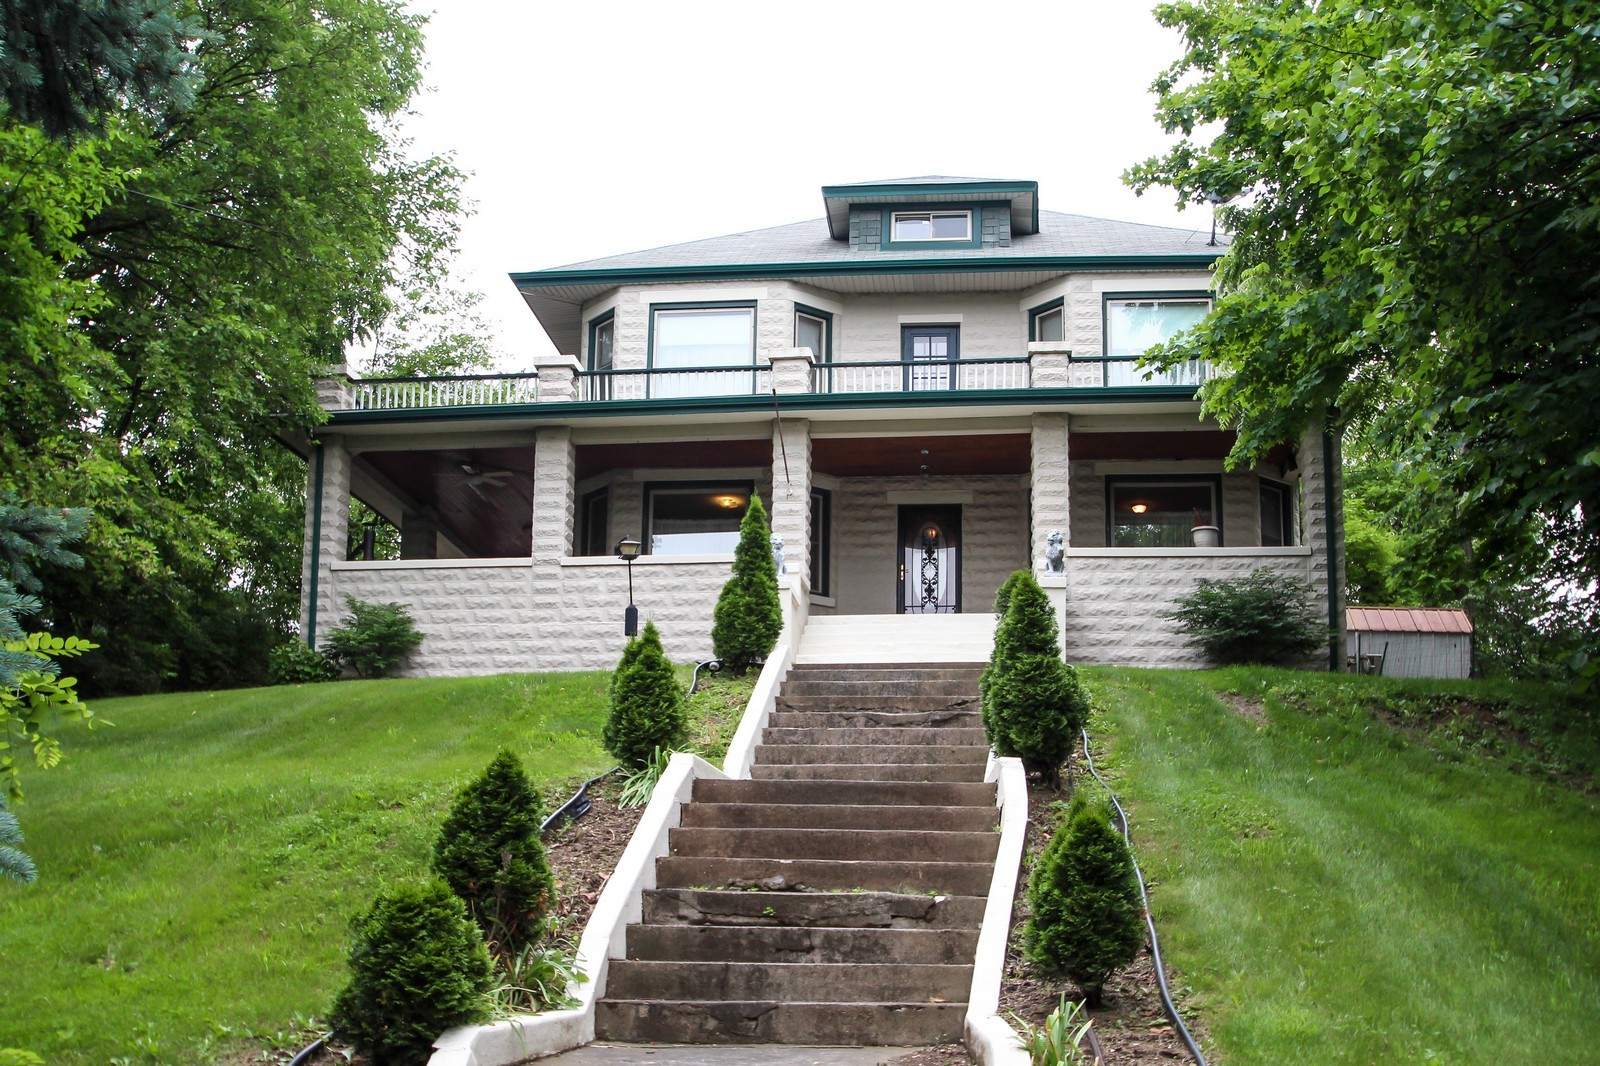 willow spring single parents Find willow springs, il homes for sale, real estate, apartments, condos & townhomes with coldwell banker residential brokerage.